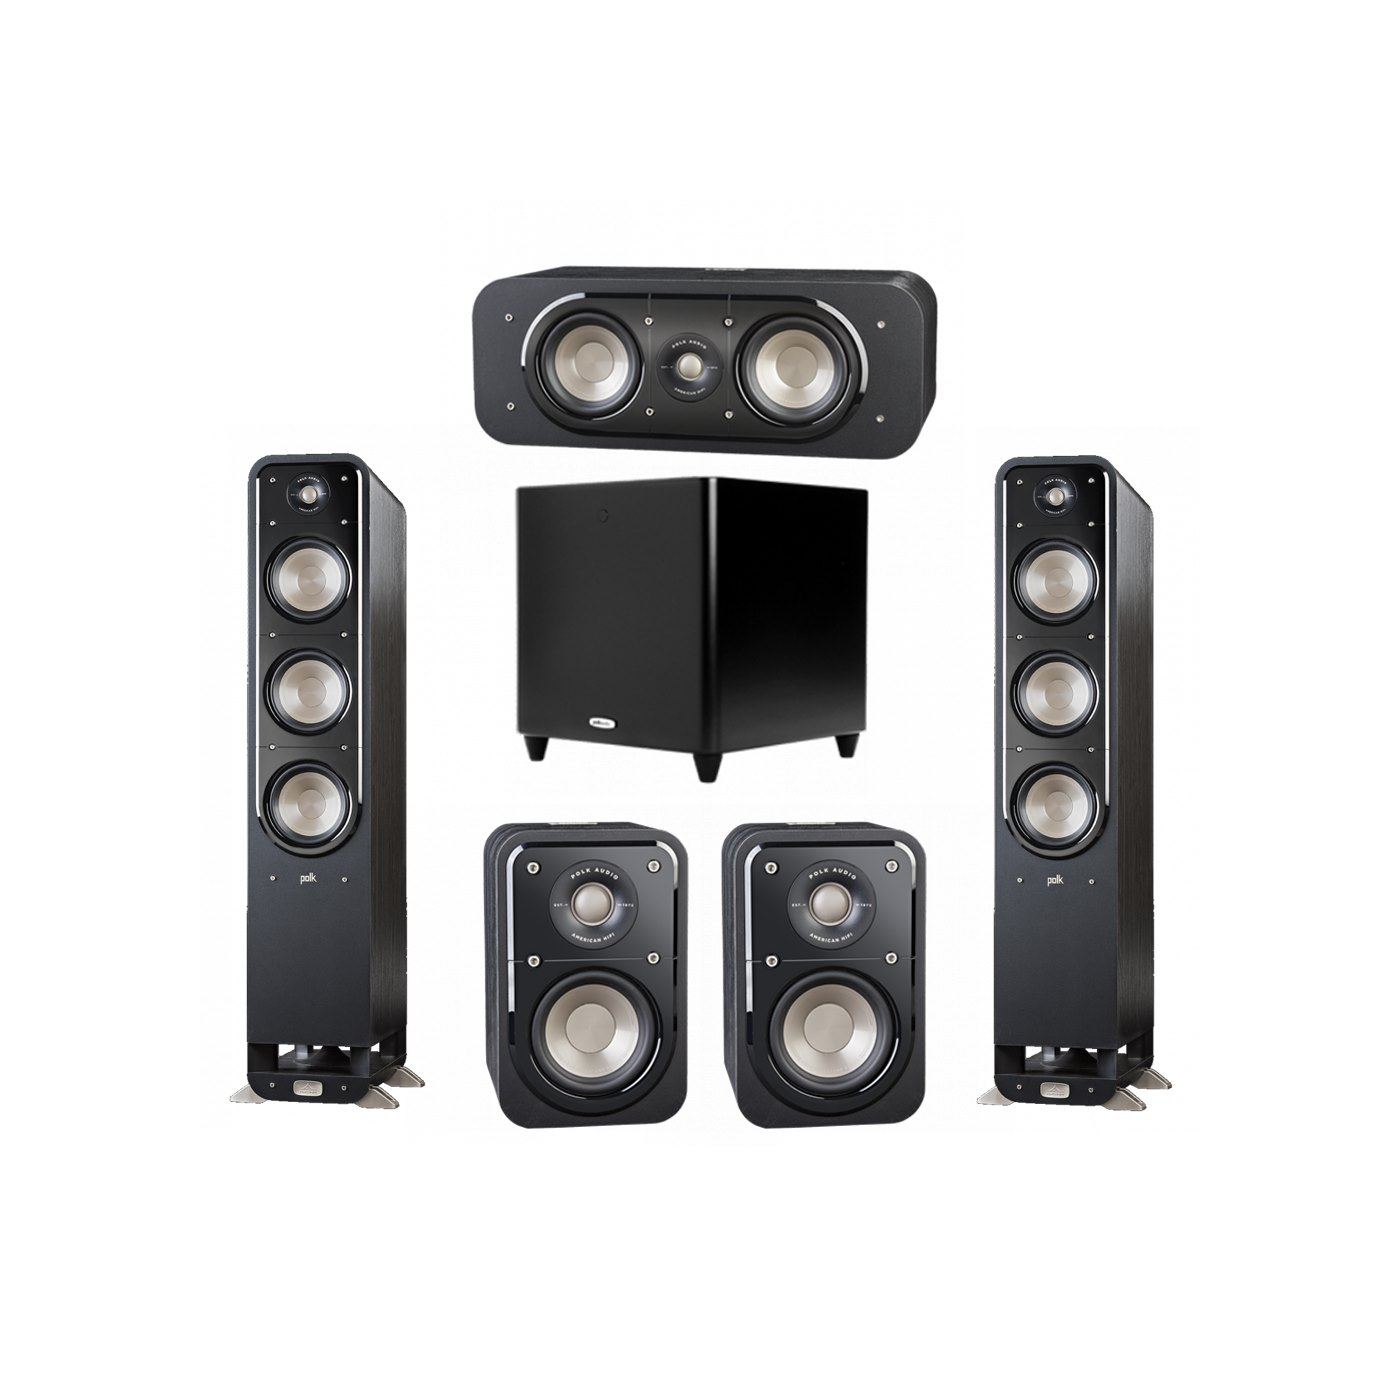 Polk Audio Signature 5.1 System with 2 S60 Tower Speaker, 1 Polk S30 Center Speaker, 2 Polk S10 Surround Speaker, 1 Polk DSW PRO 660 wi Subwoofer